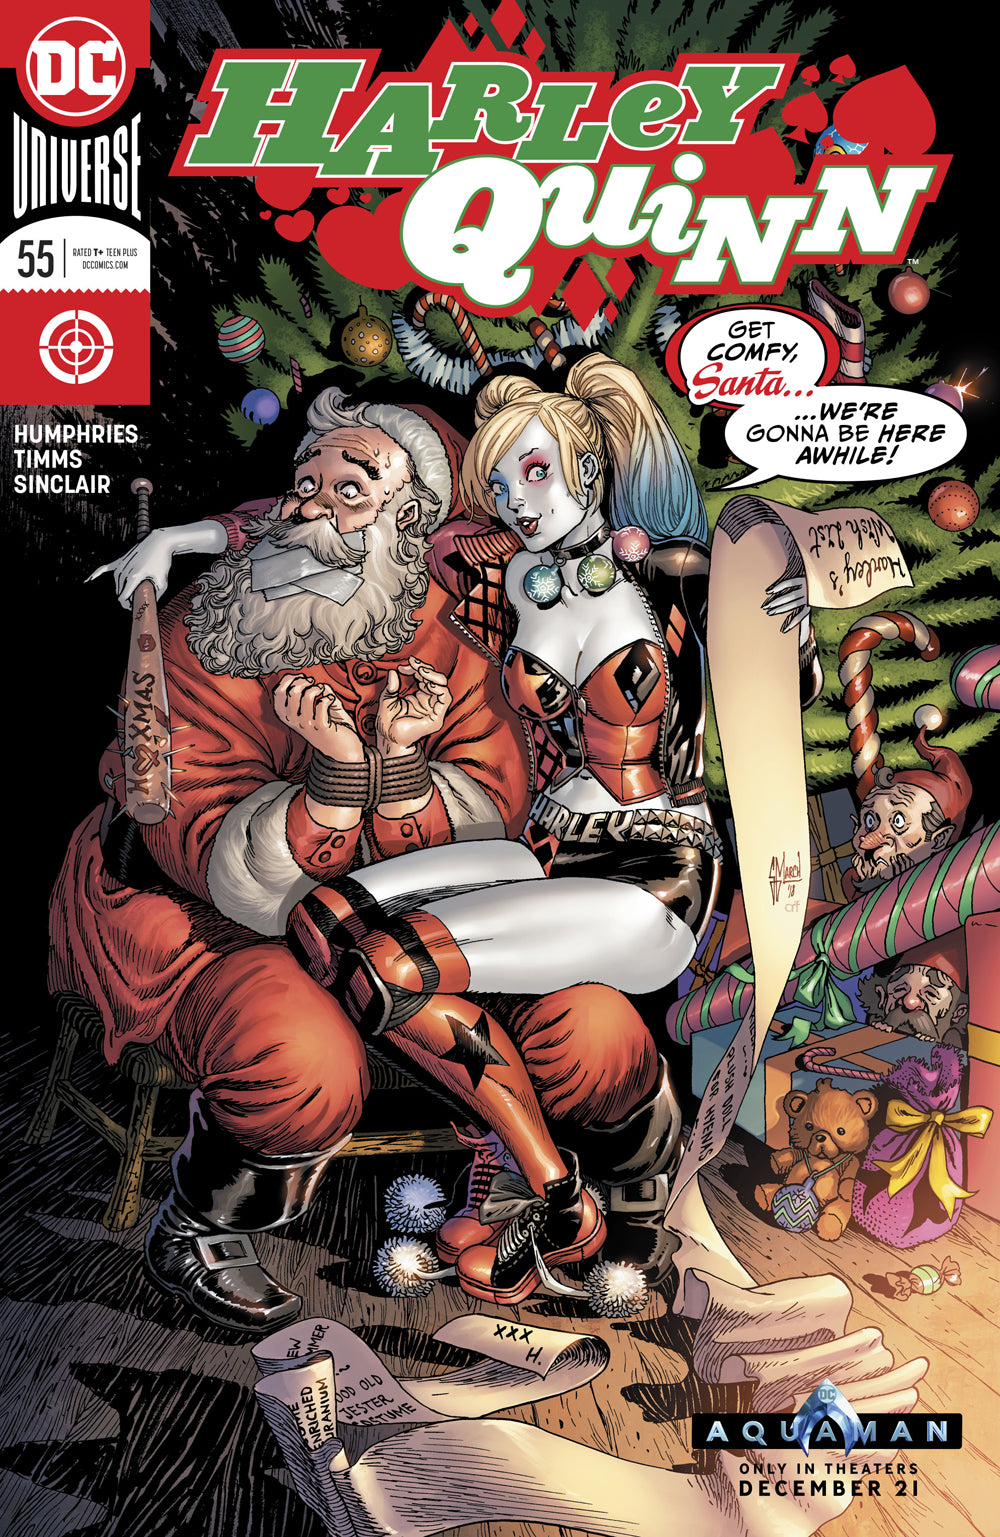 HARLEY QUINN #55 | Game Master's Emporium (The New GME)